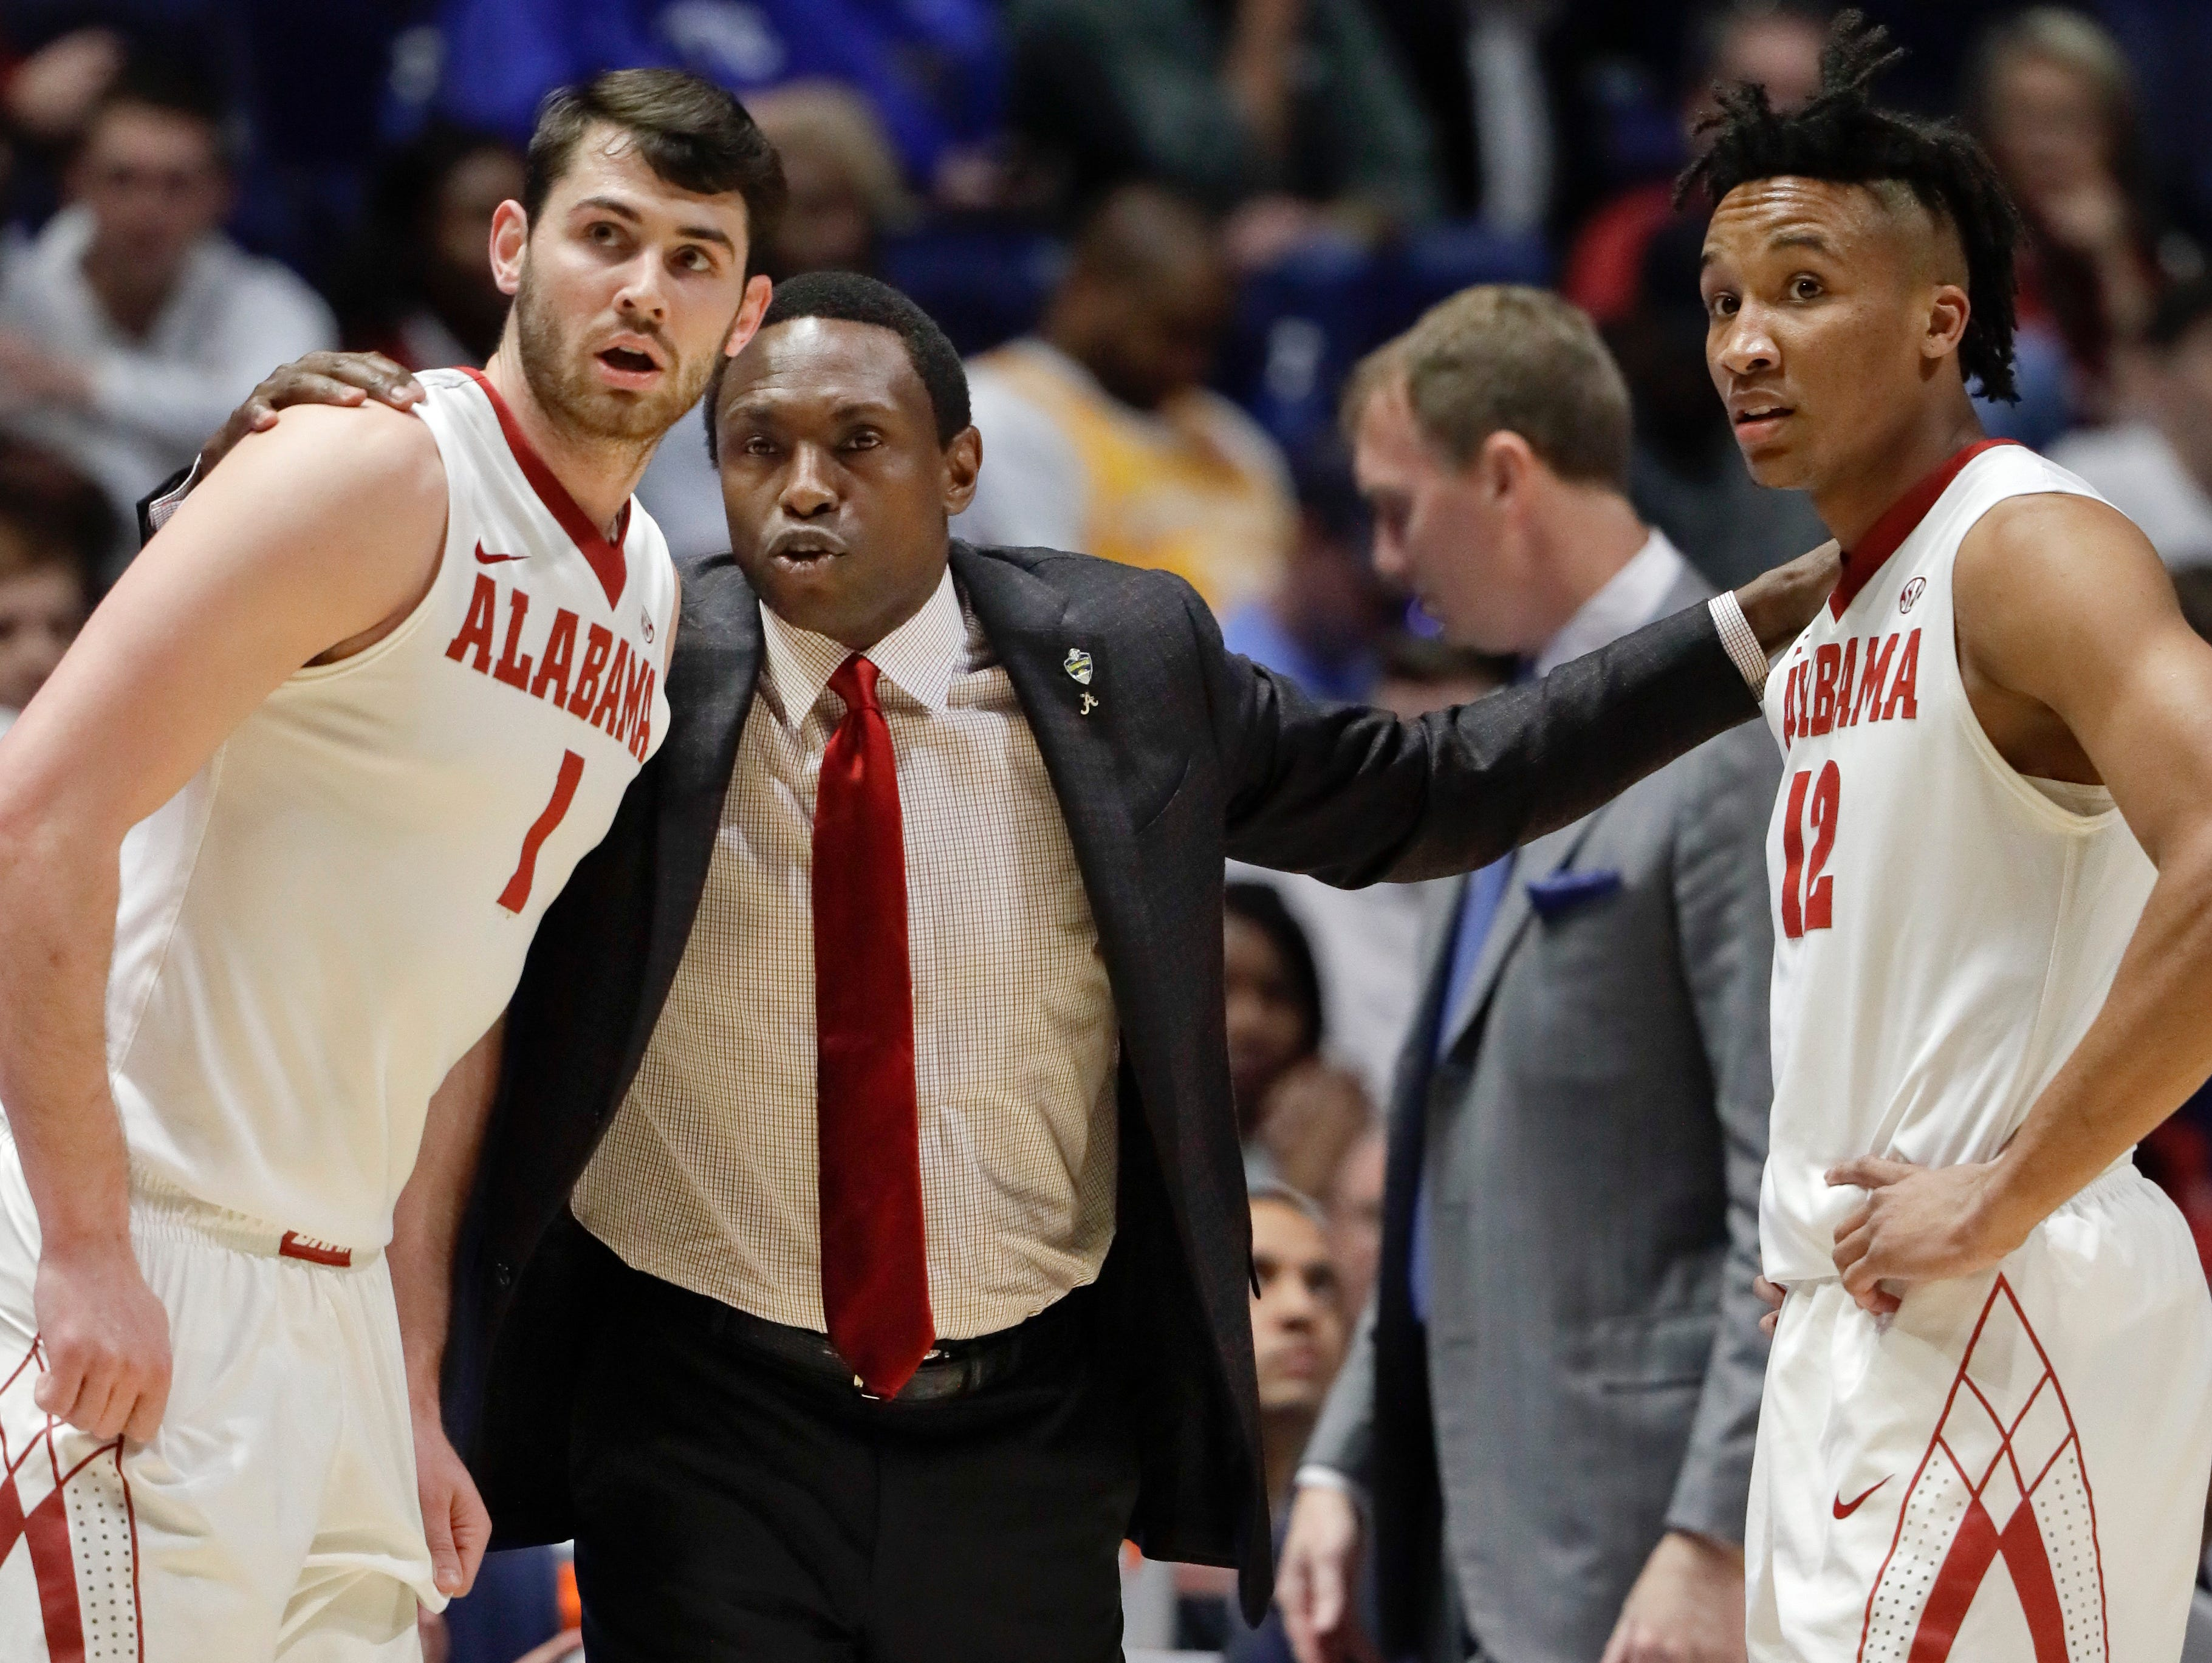 Alabama head coach Avery Johnson, second from left, talks with Riley Norris (1) and Dazon Ingram (12) during the first half of an NCAA college basketball game against Mississippi State at the Southeastern Conference tournament Thursday, March 9, 2017, in Nashville, Tenn.